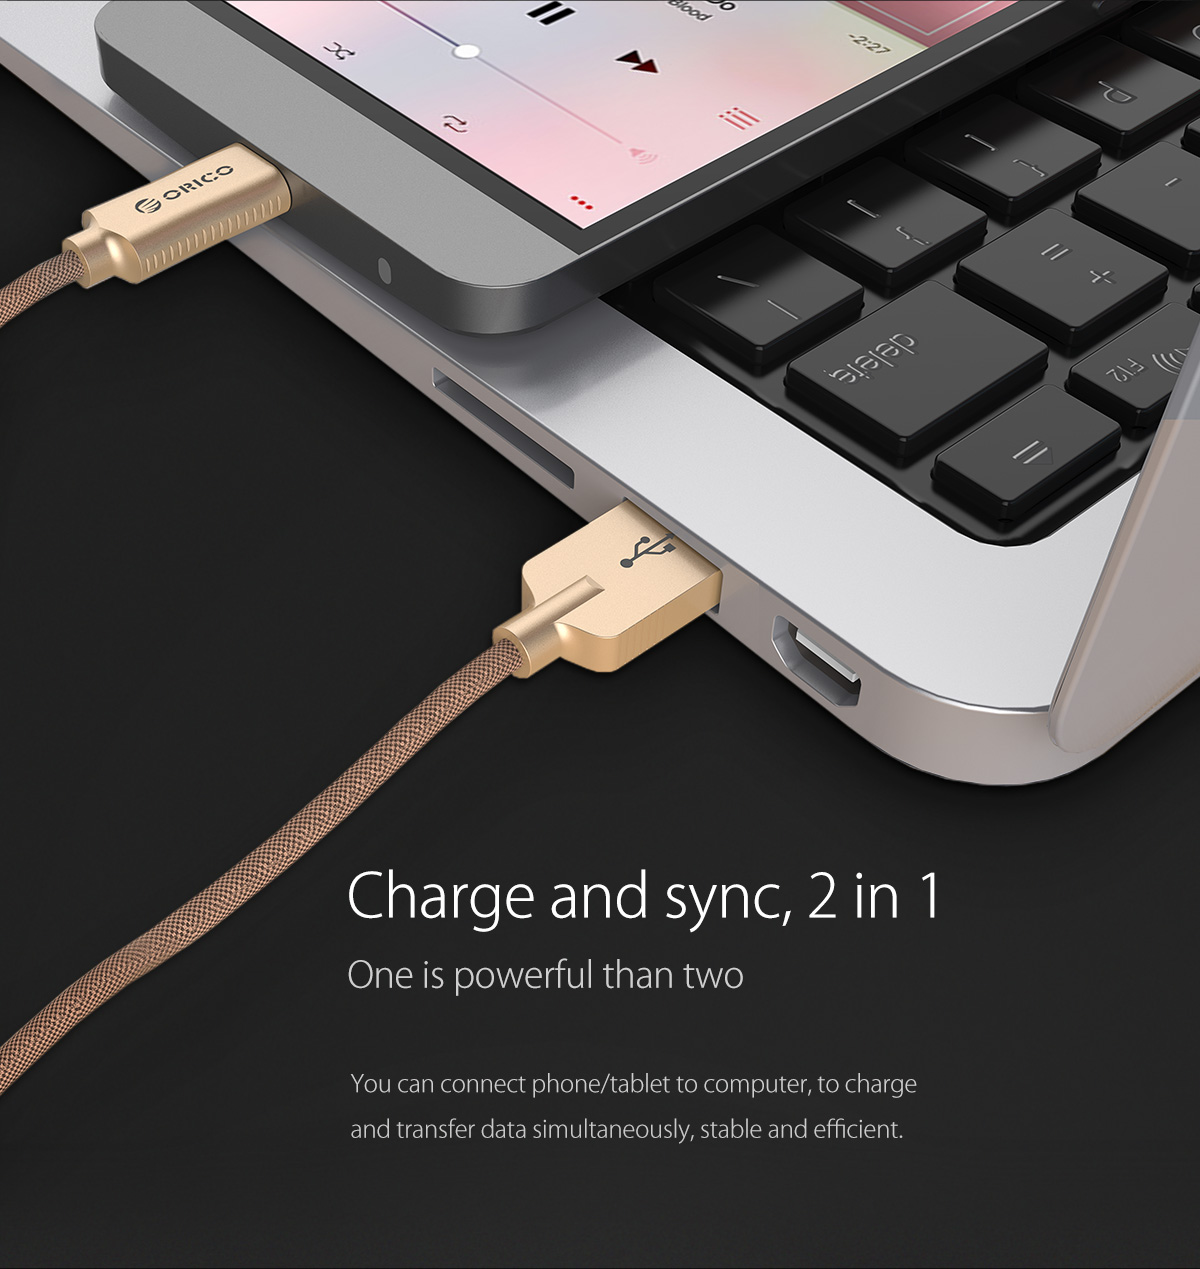 charge and sync,2 in 1